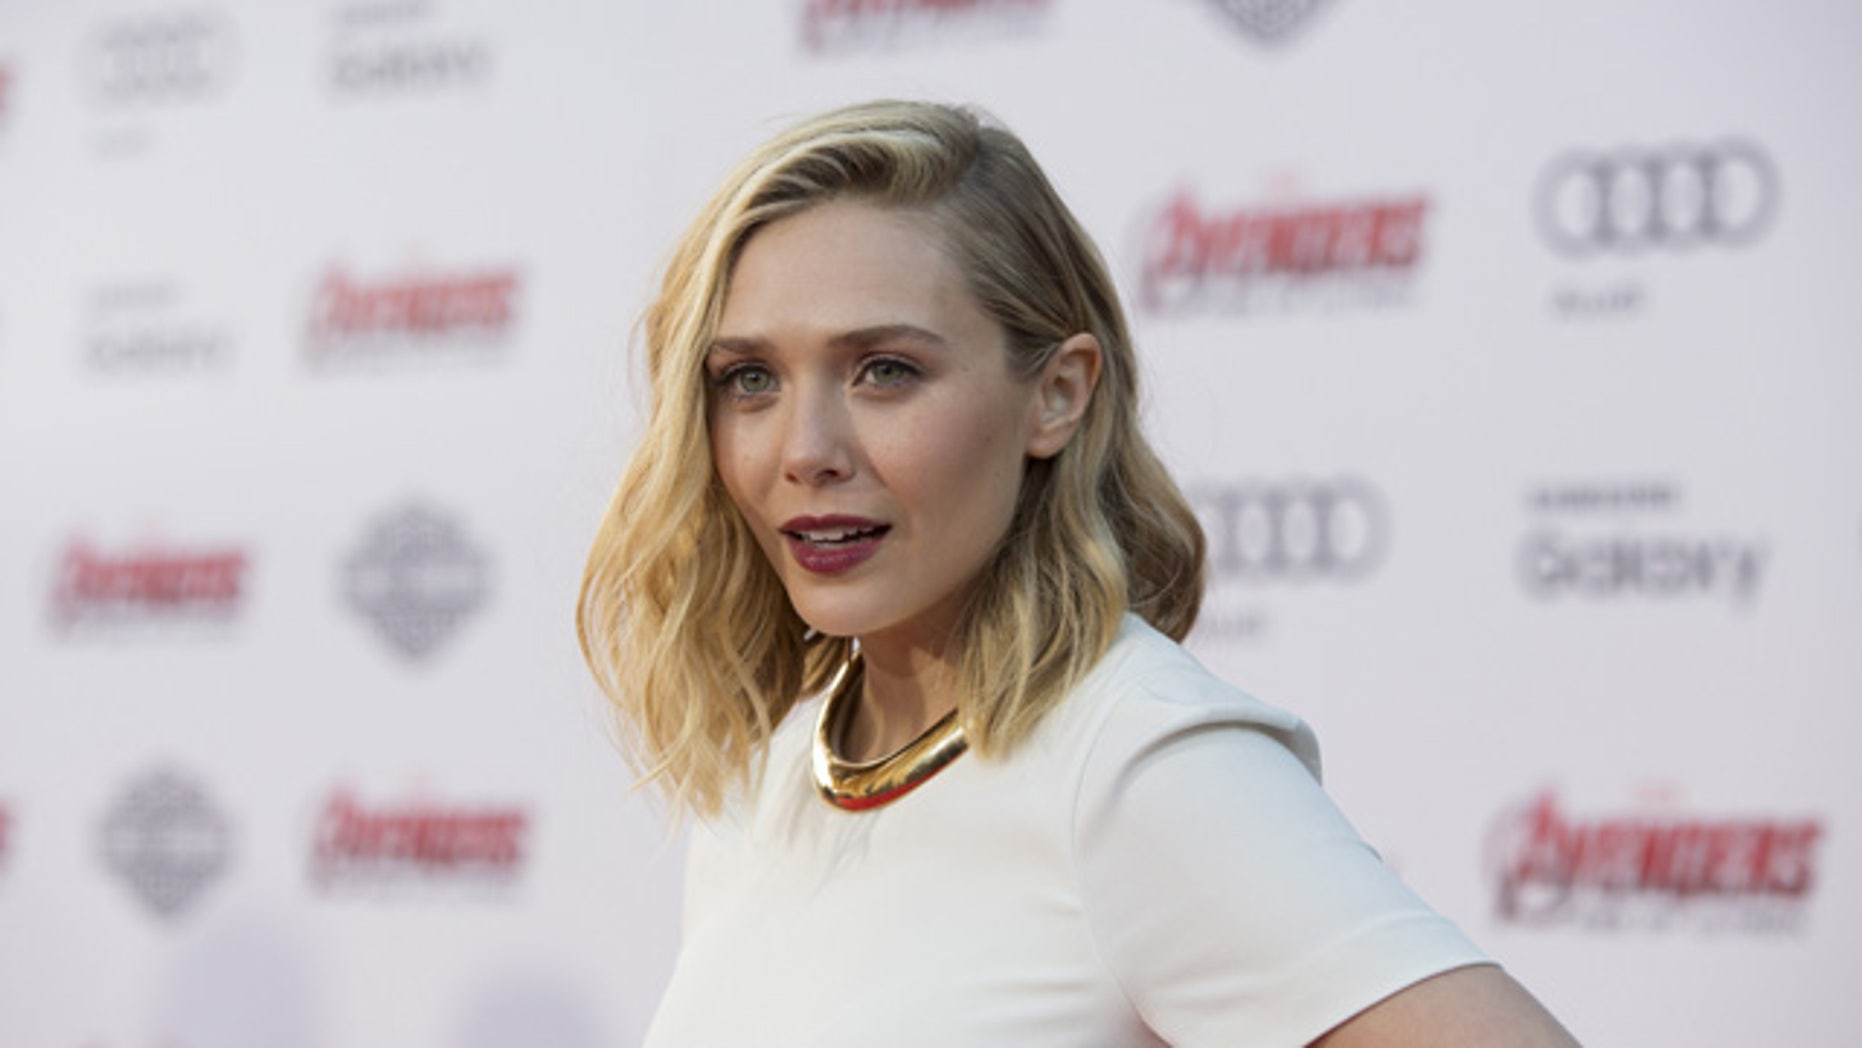 """April 13, 2015. Cast member Elizabeth Olsen poses at the premiere of """"Avengers: Age of Ultron"""" at Dolby theatre in Hollywood, California."""